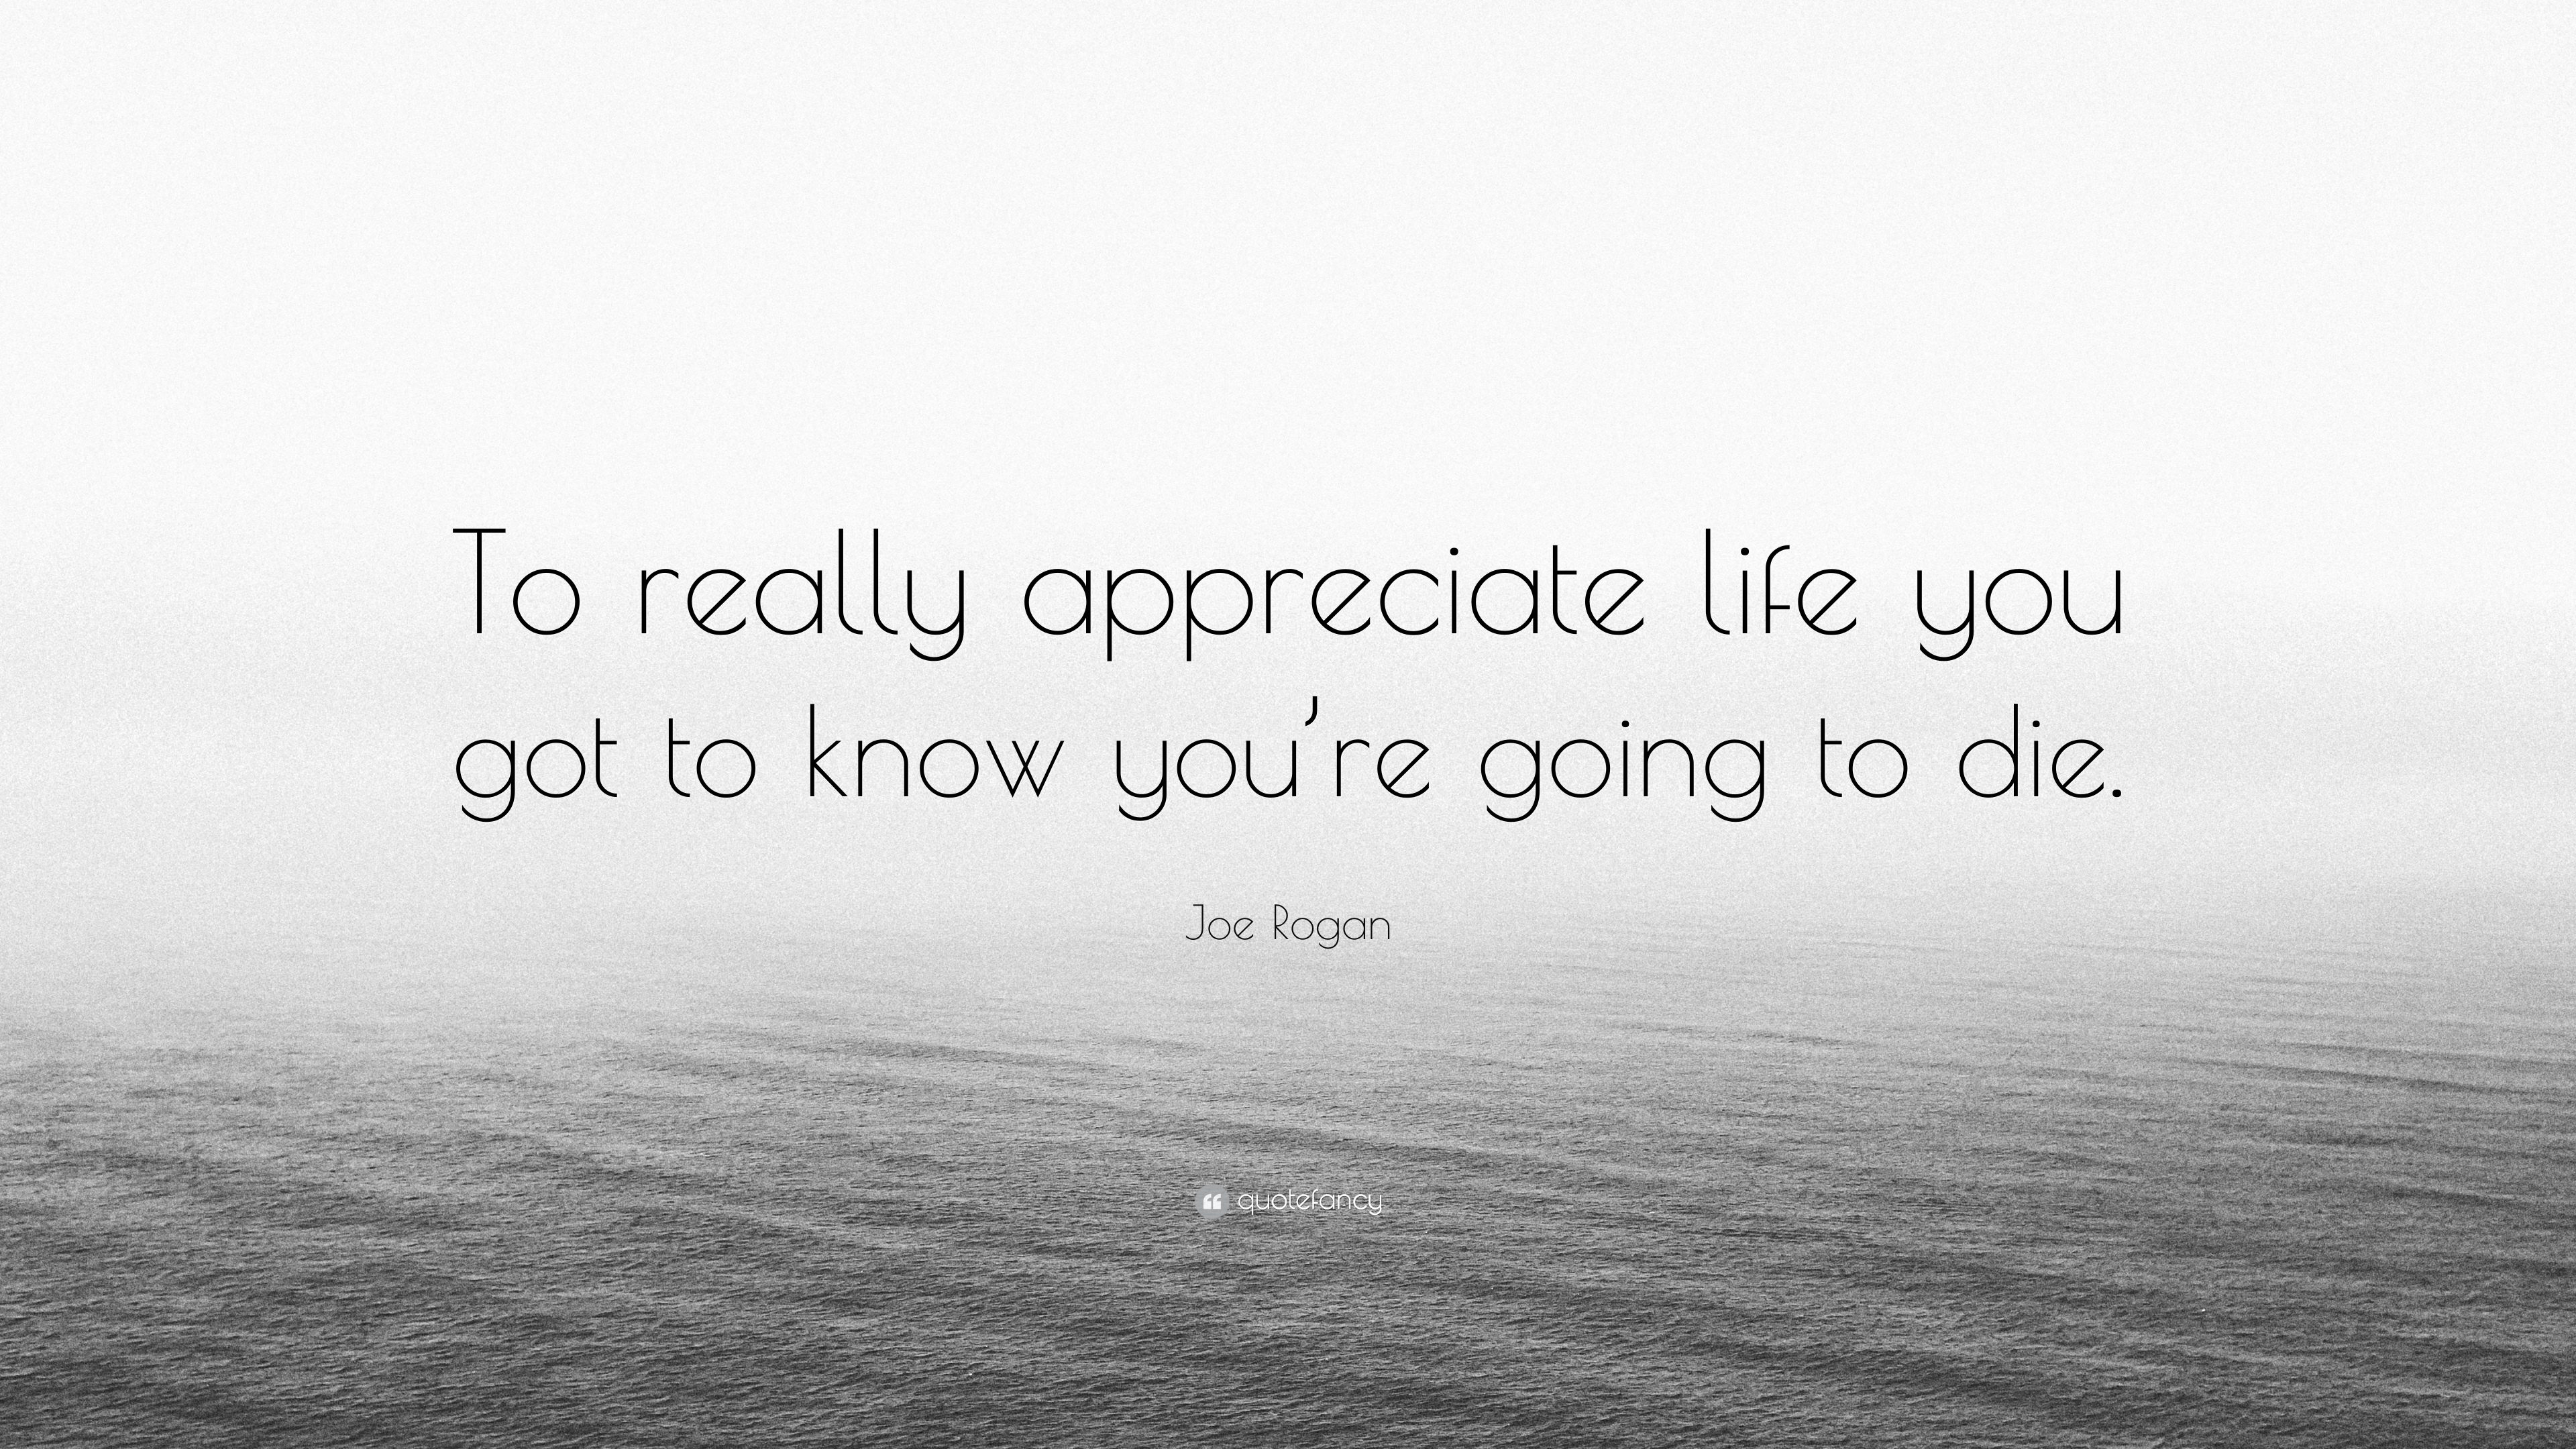 joe rogan quote to really appreciate life you got to know you re